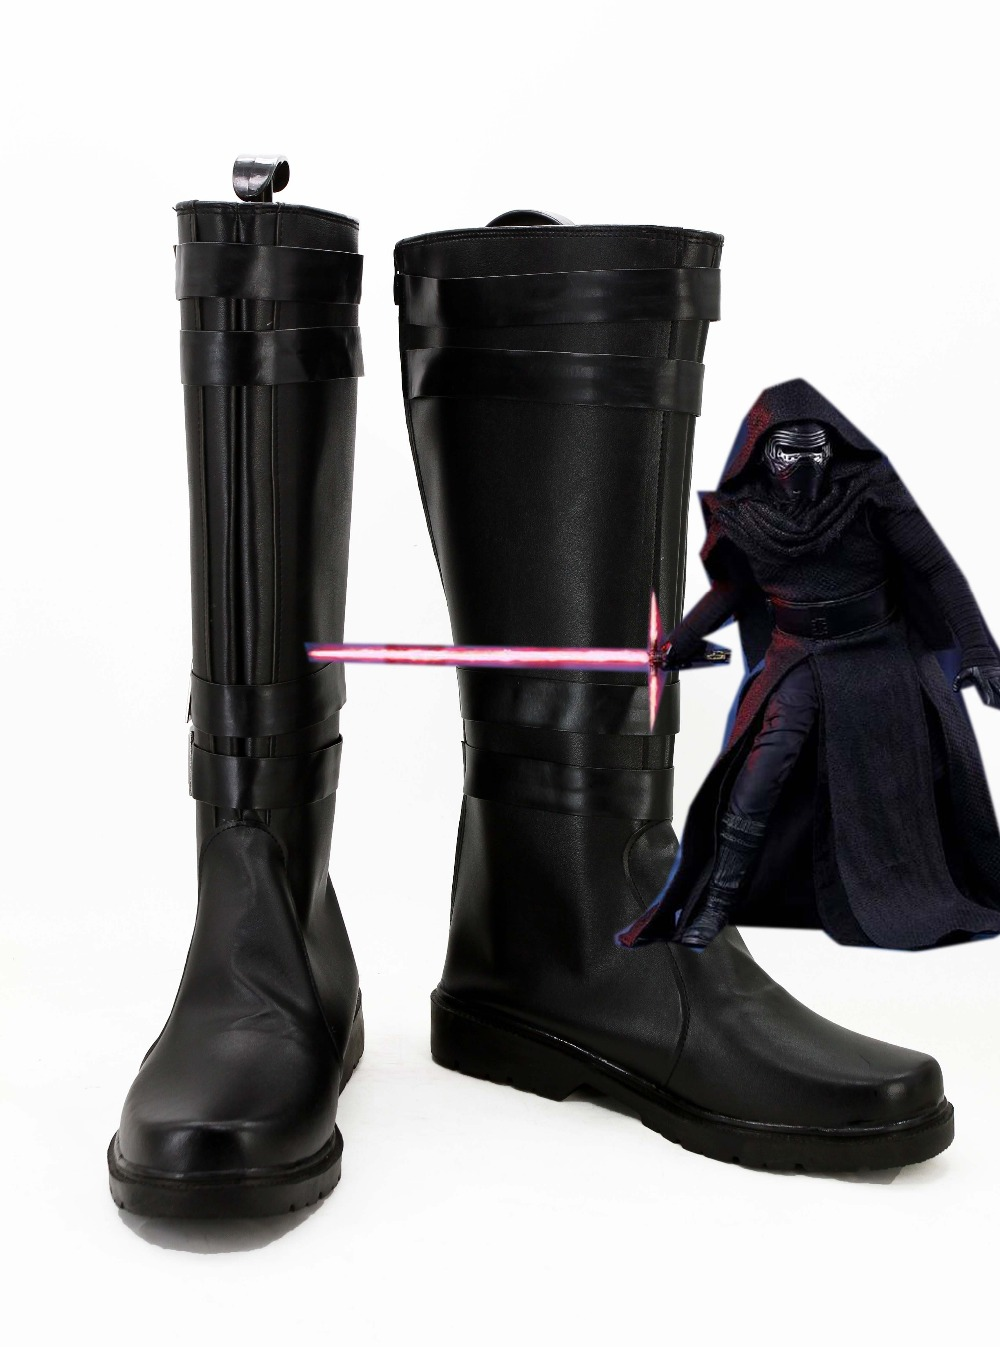 Star Wars 7: The Force Awakens Kylo Ren čevlji čevlji Cosplay kostum po naročilu